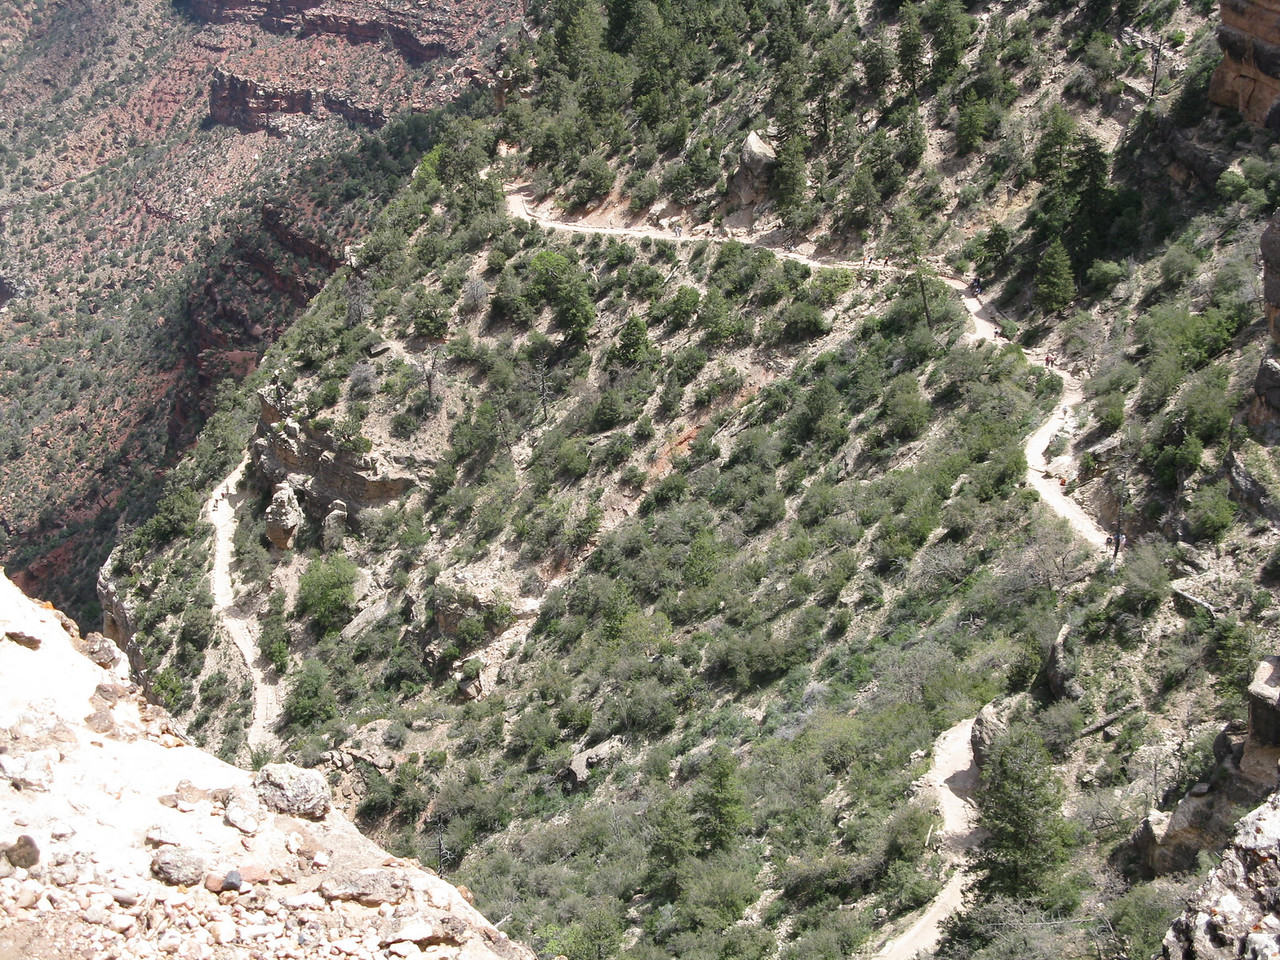 A dizzying picture lookng down on the Bright Angel Trail just above the Coconino Sandstone cliffs.